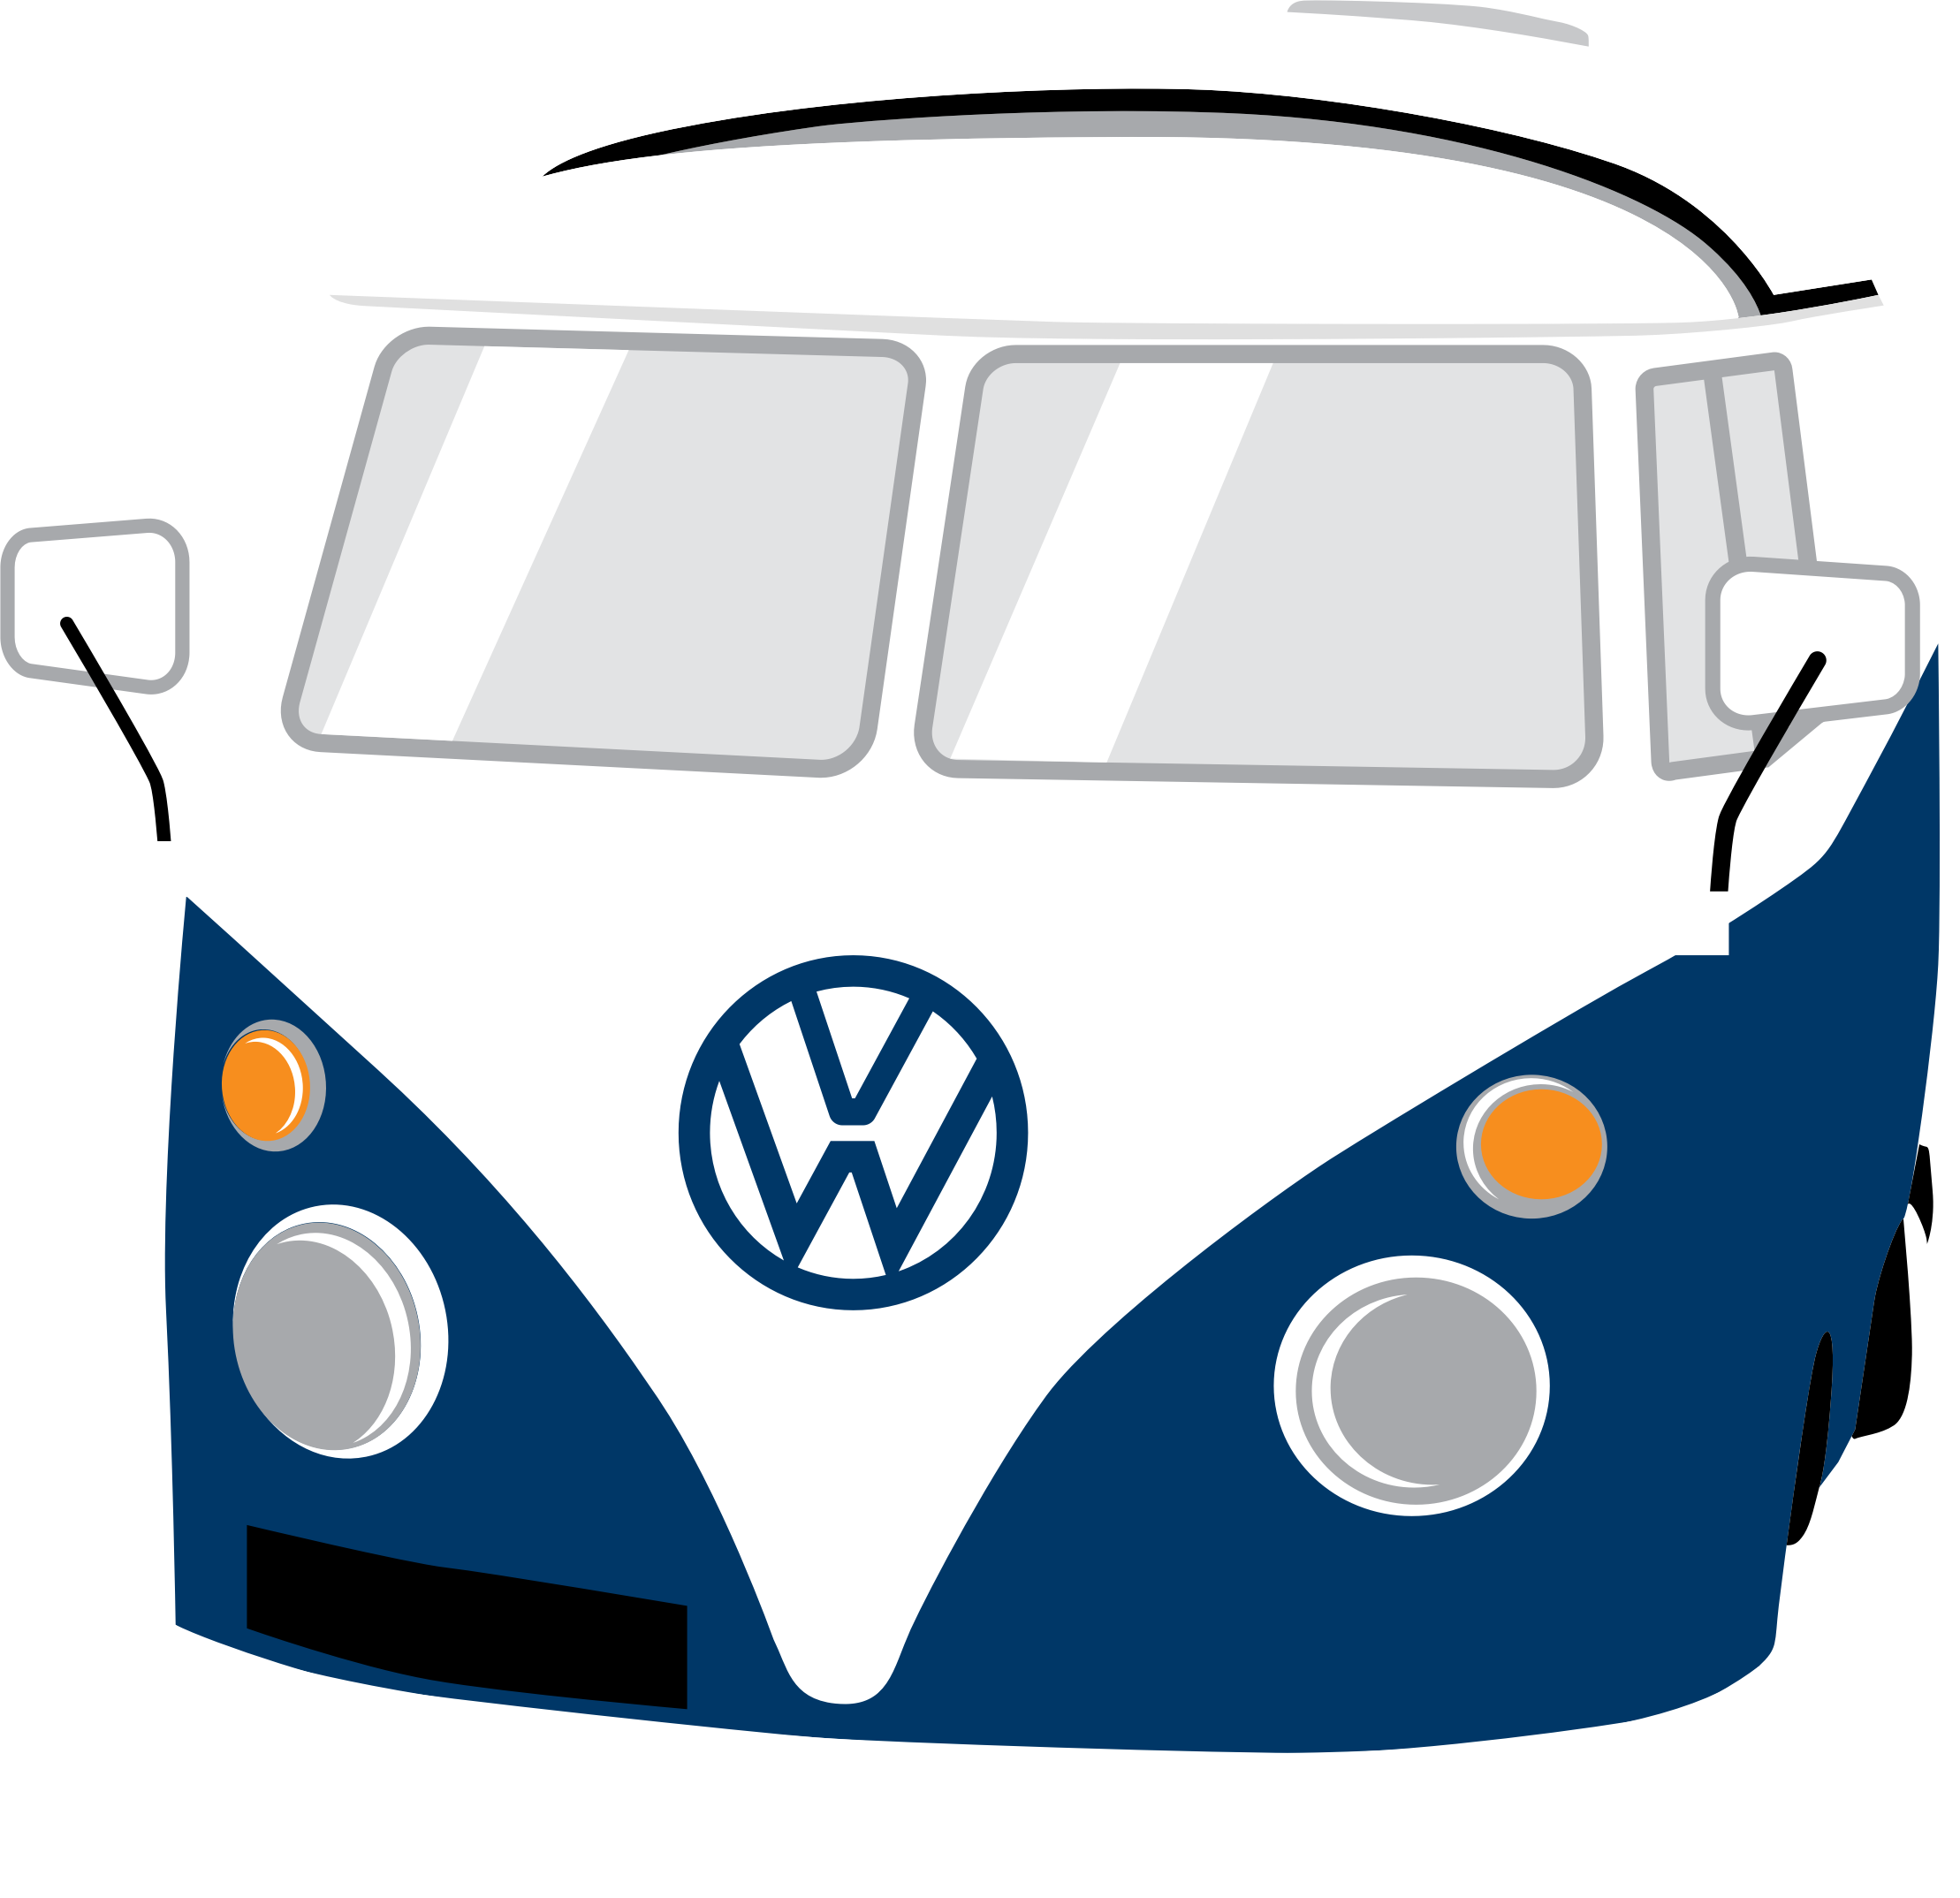 Bug car clipart banner royalty free Clipart - Volkswagen Beetle banner royalty free